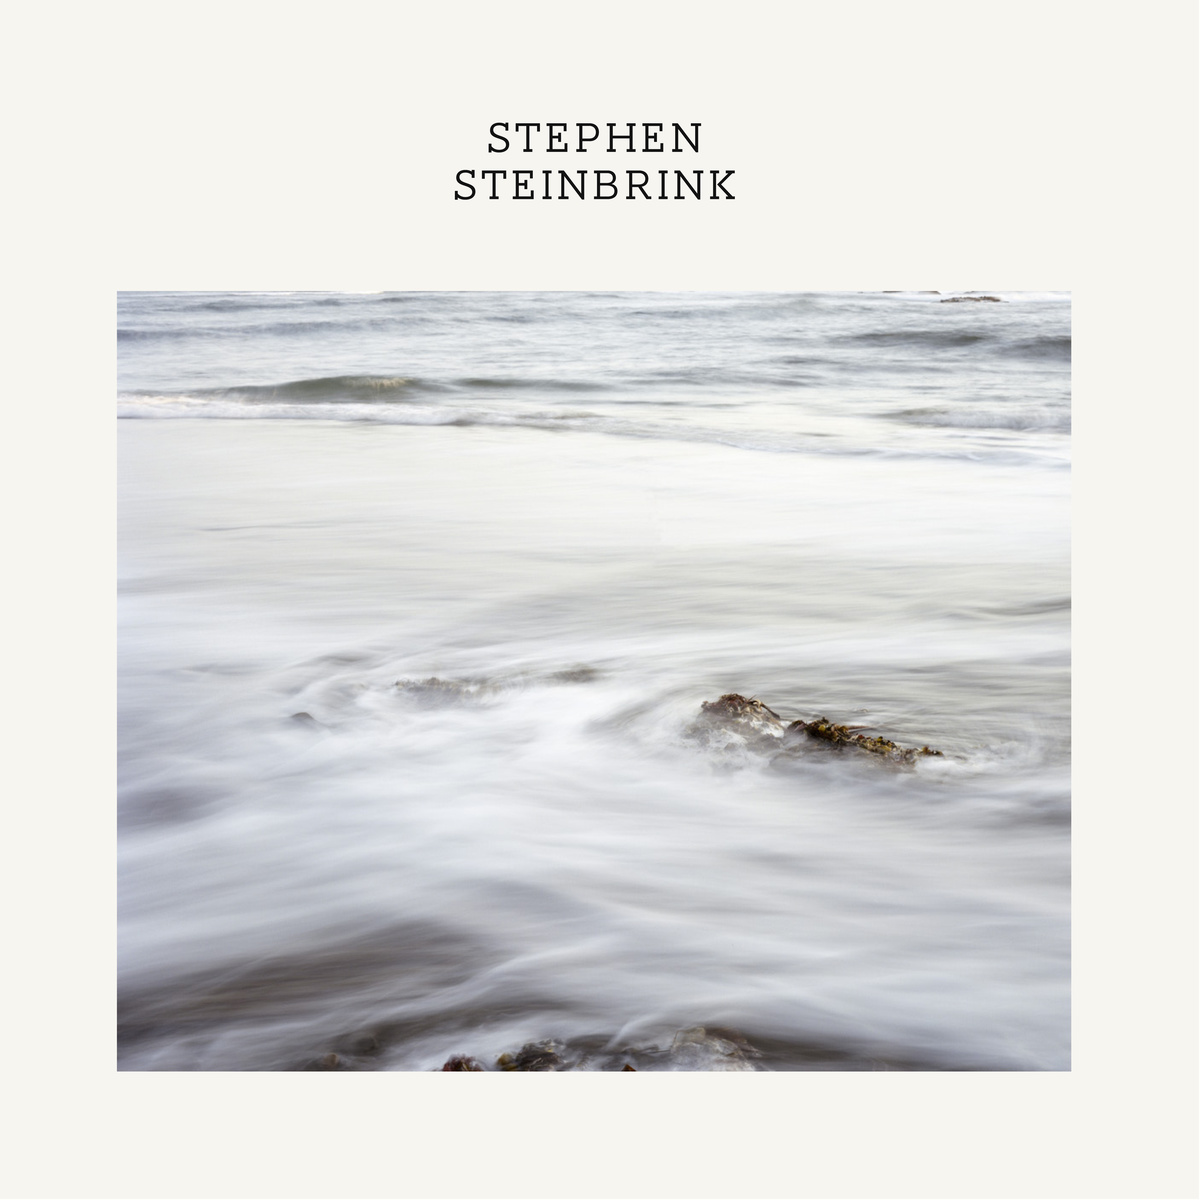 CZYNNIKI PIERWSZE: Stephen Steinbrink - Arranged Waves